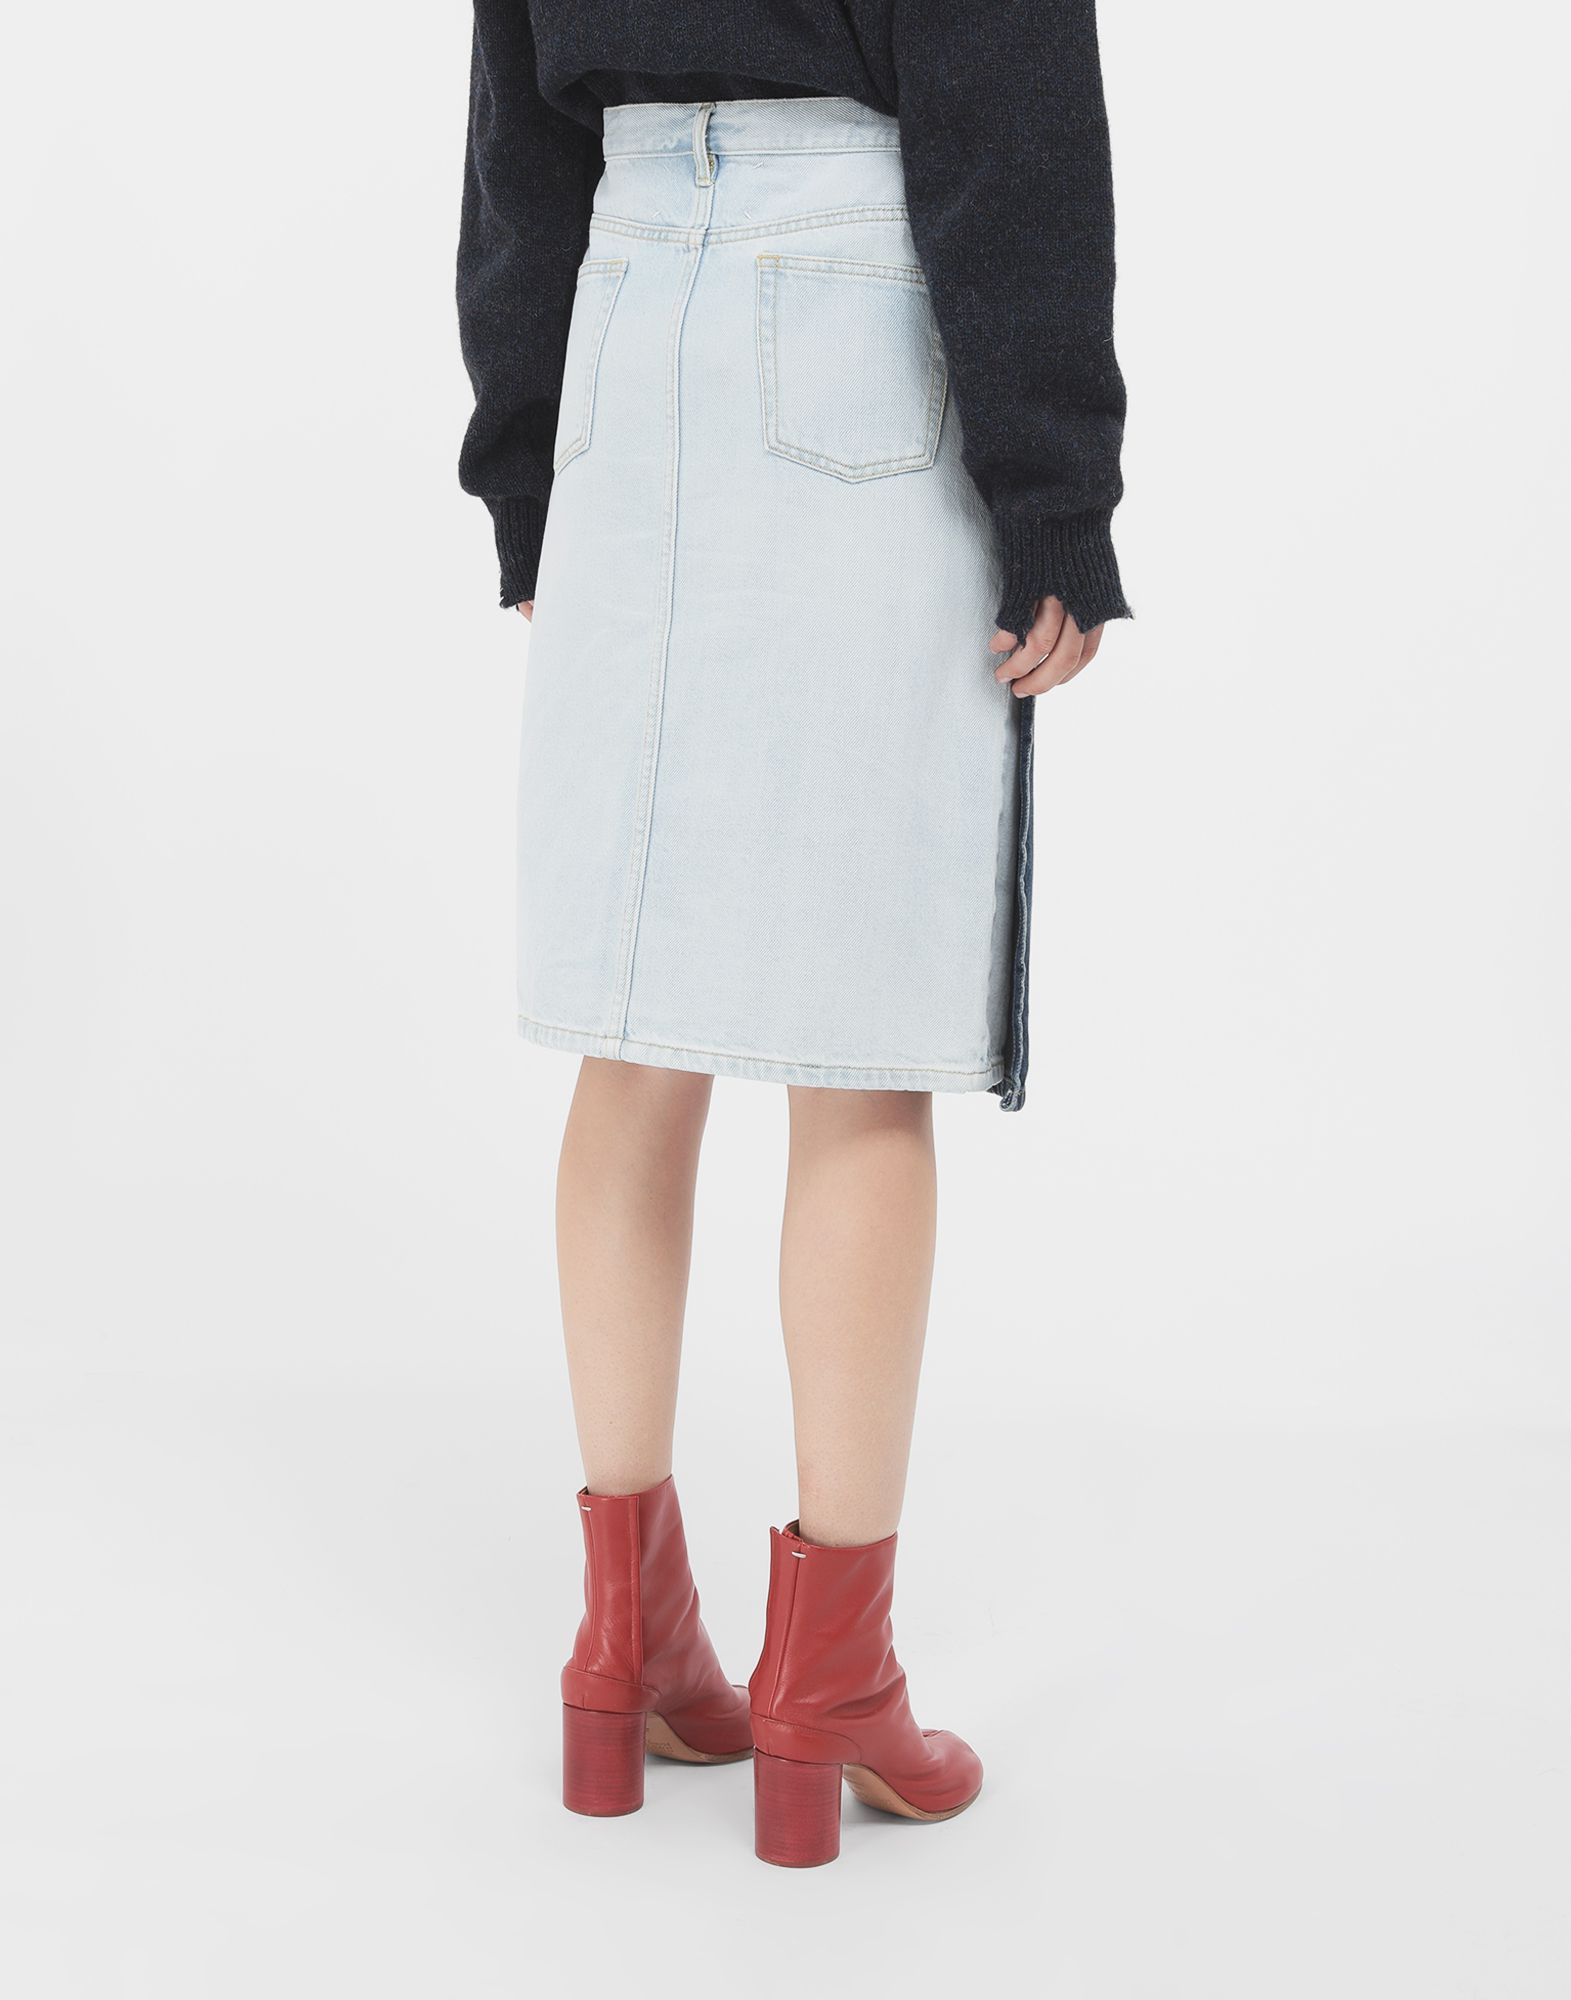 MAISON MARGIELA Spliced skirt 3/4 length skirt Woman e